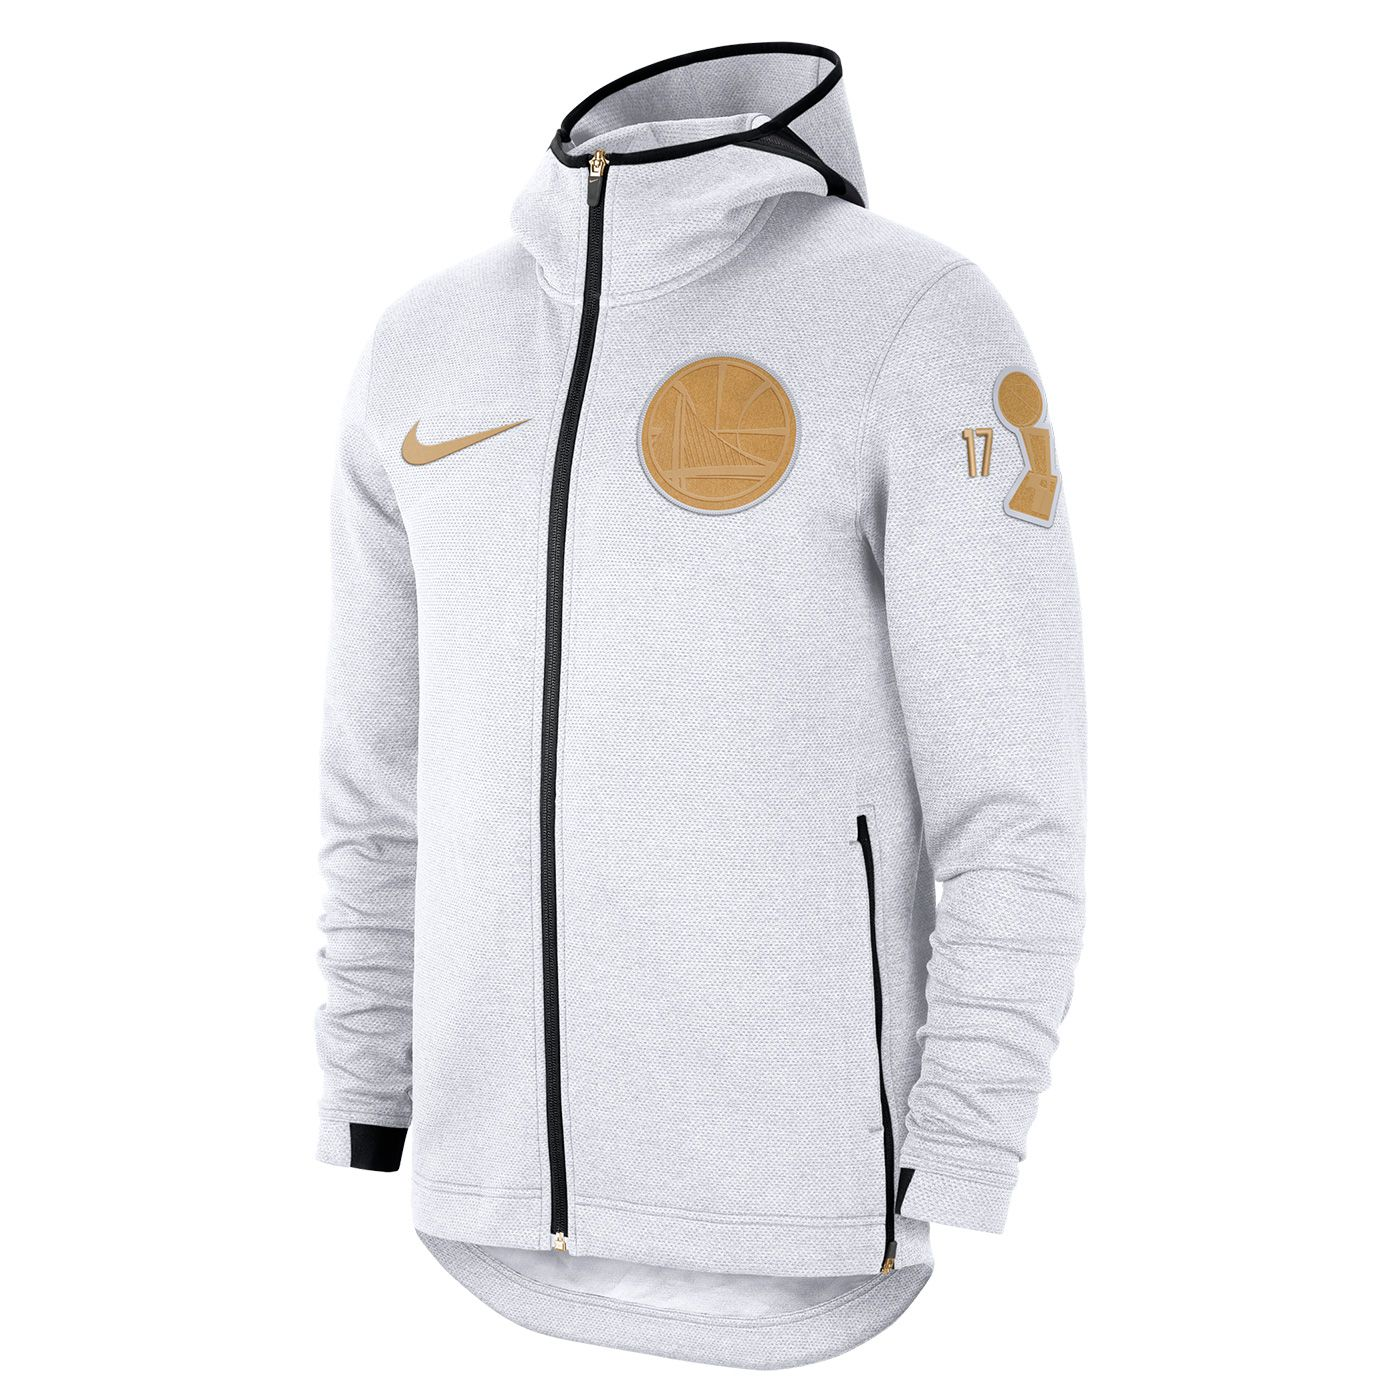 f8c928ee5 Golden State Warriors Nike Men's Therma Flex Back to Back Champions Trophy  Ring Banner Showtime Full Zip Hoodie - White - Golden State Warriors -  Official ...